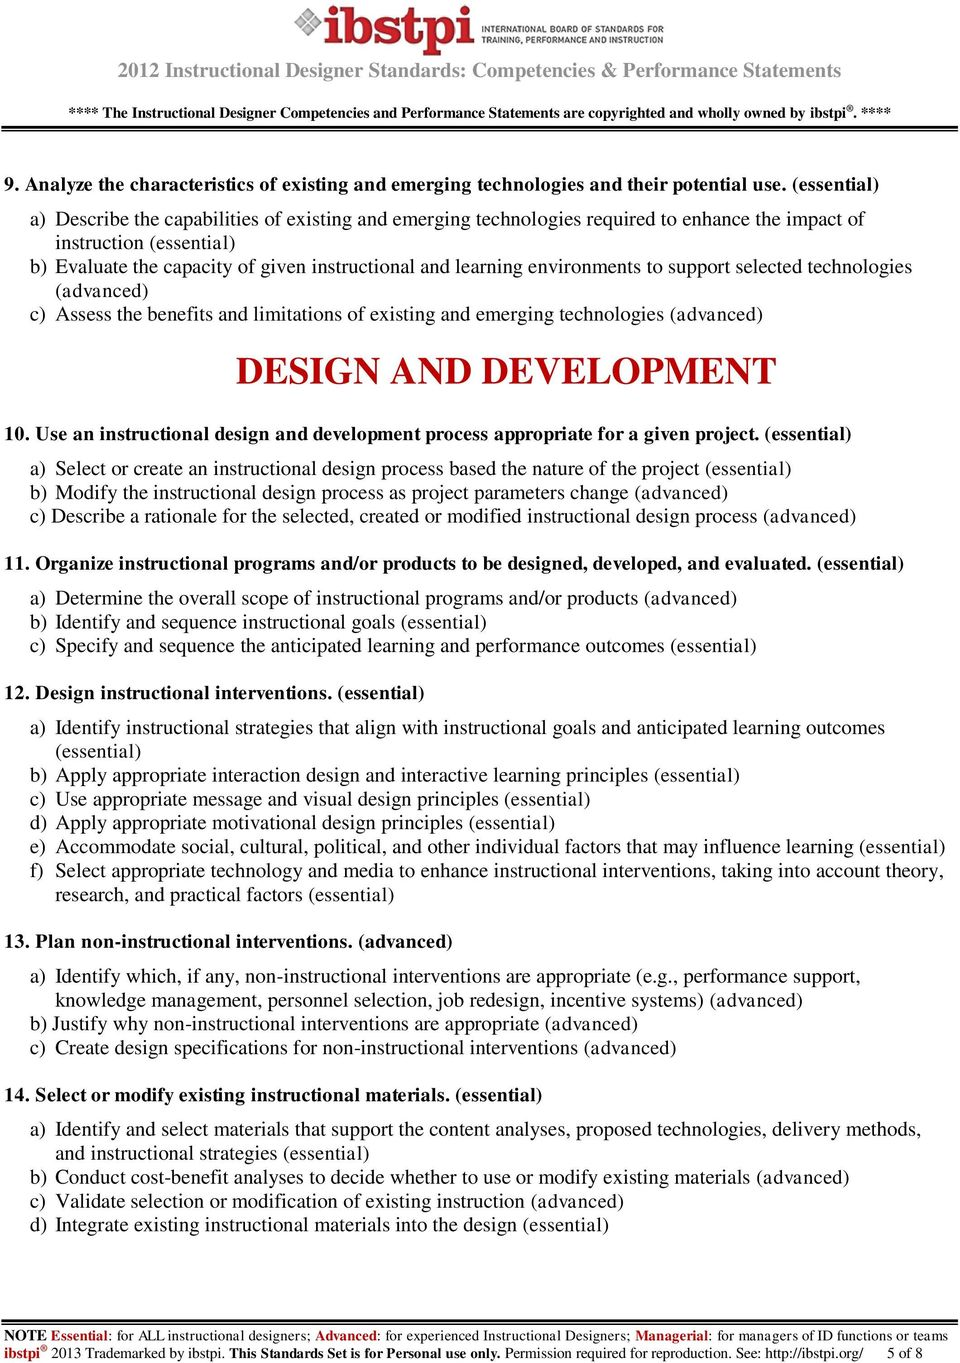 Instructional Designer Standards Competencies Performance Statements Pdf Free Download